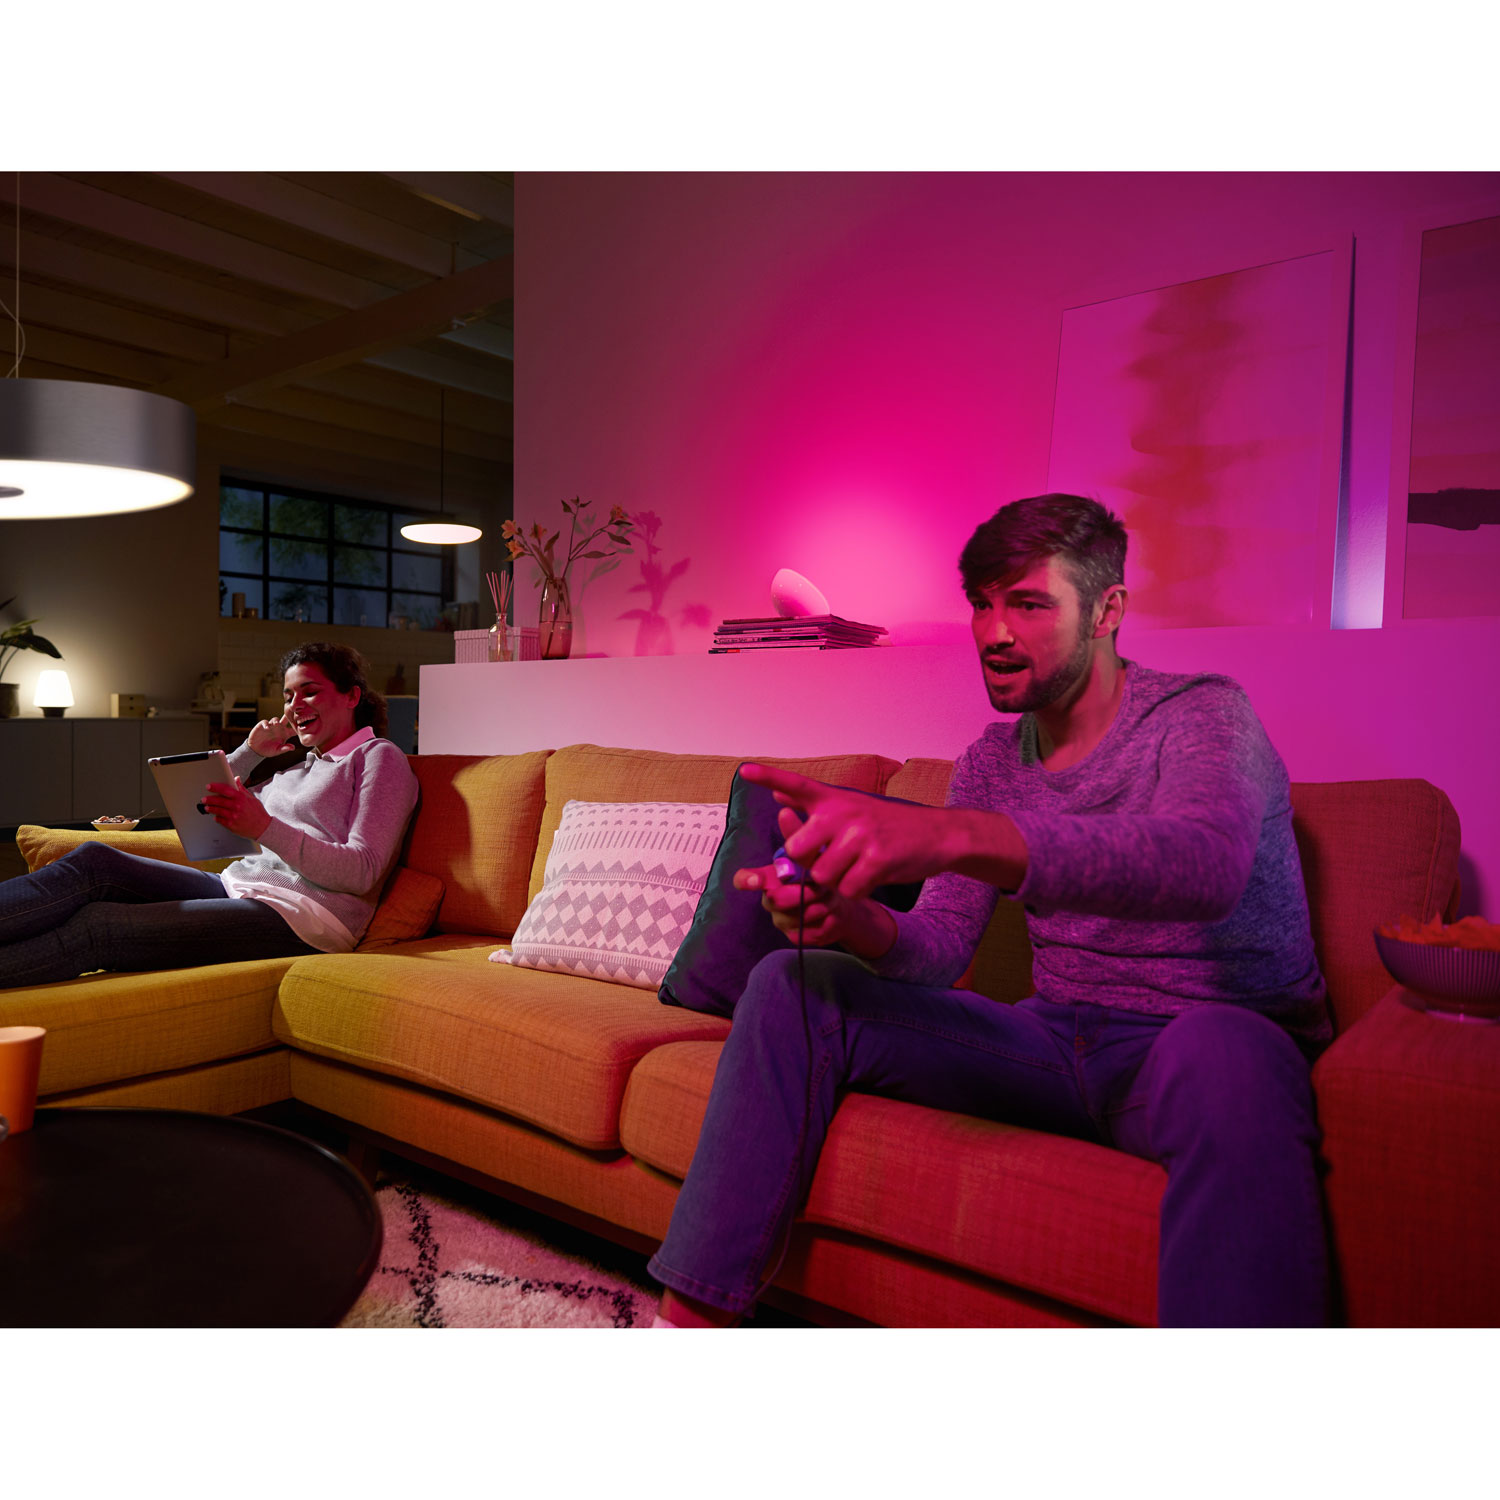 Phillips Hue smart lights